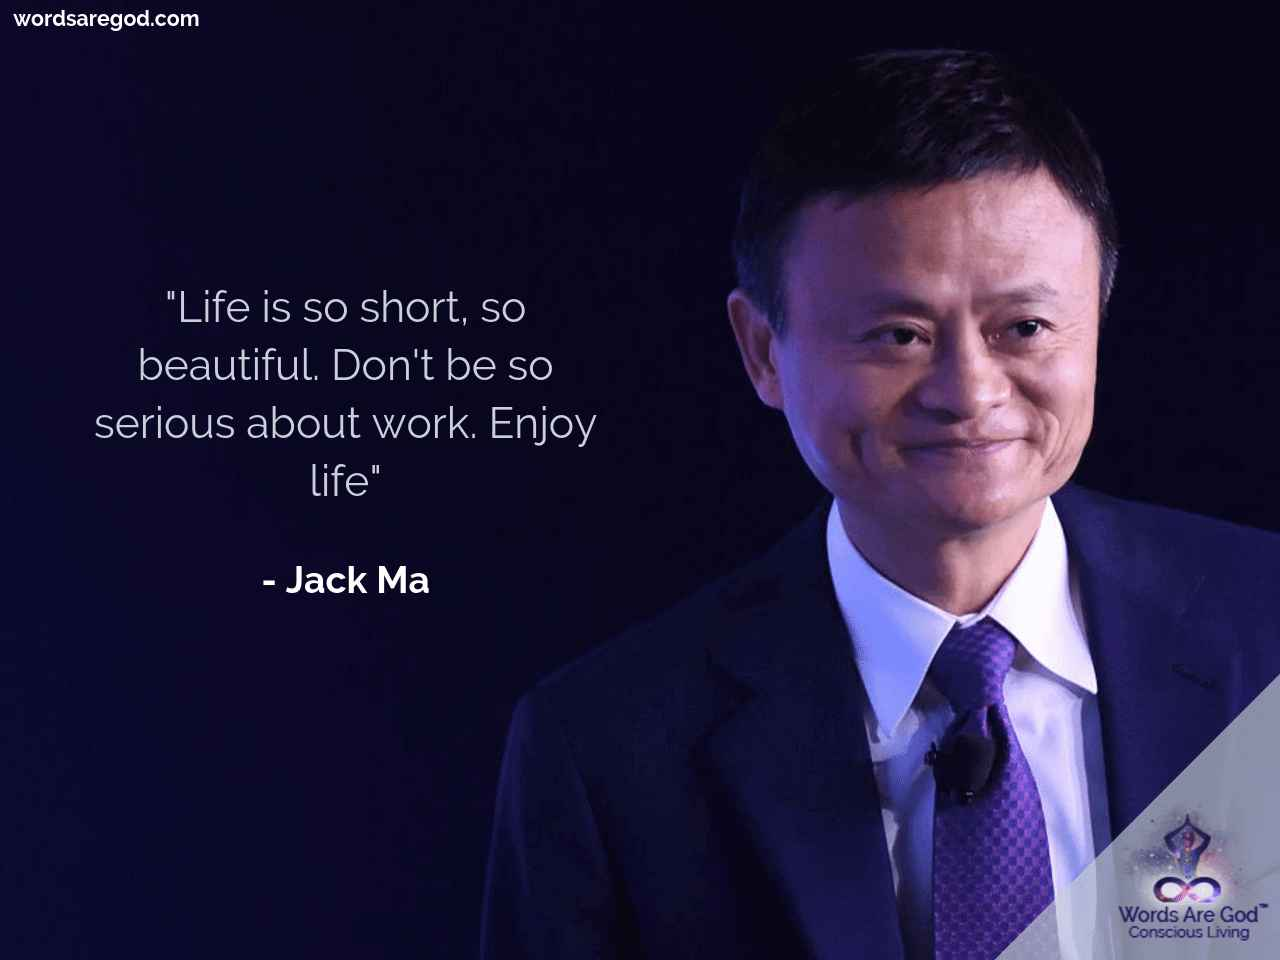 Jack Ma Inspirational Quote